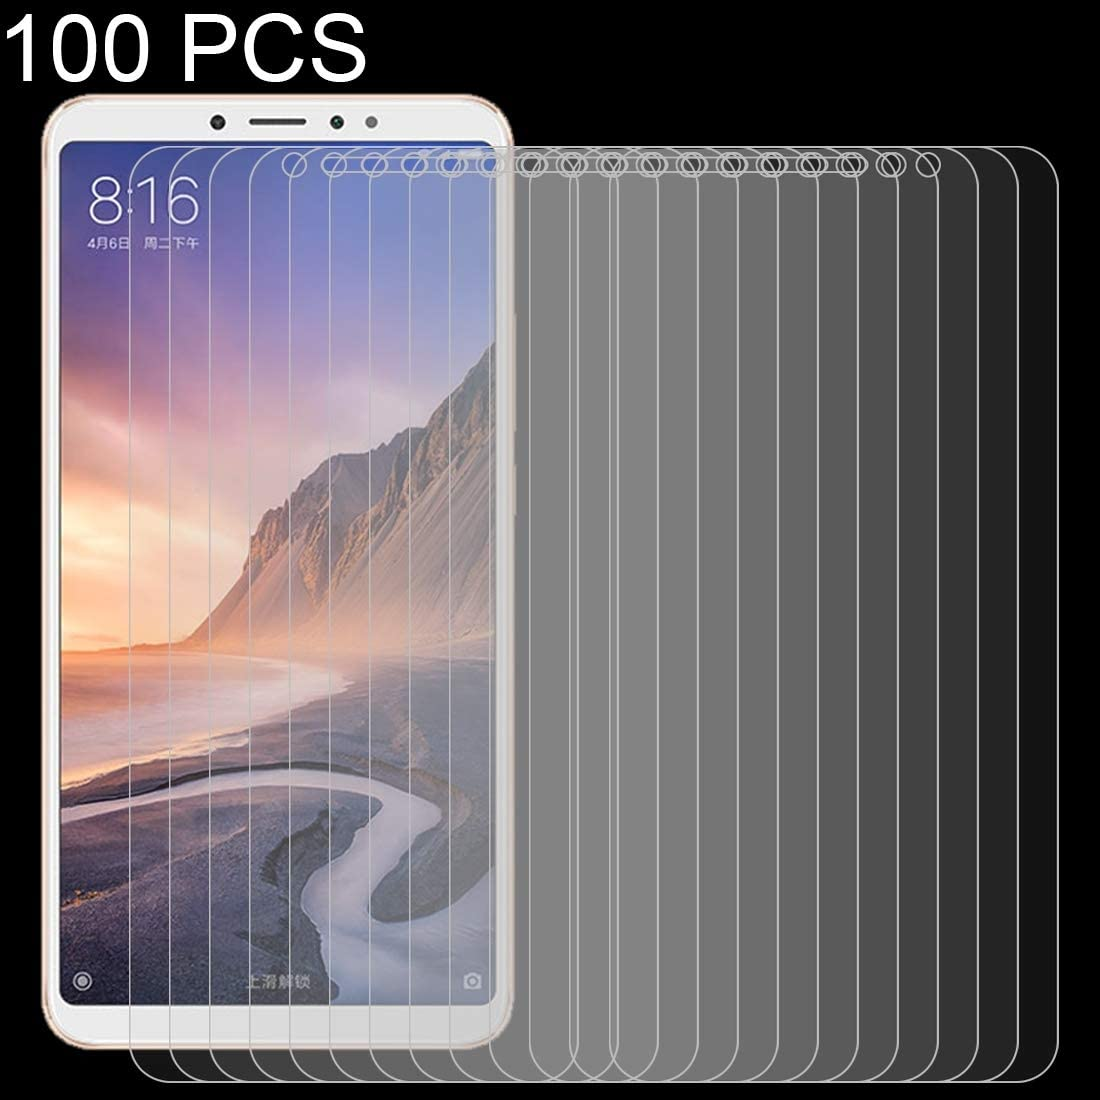 Dongdexiu Mobile Phone Accessories 100PCS 9H 2.5D Tempered Glass Film for Xiaomi Mi Max 3 Tempered Glass Film